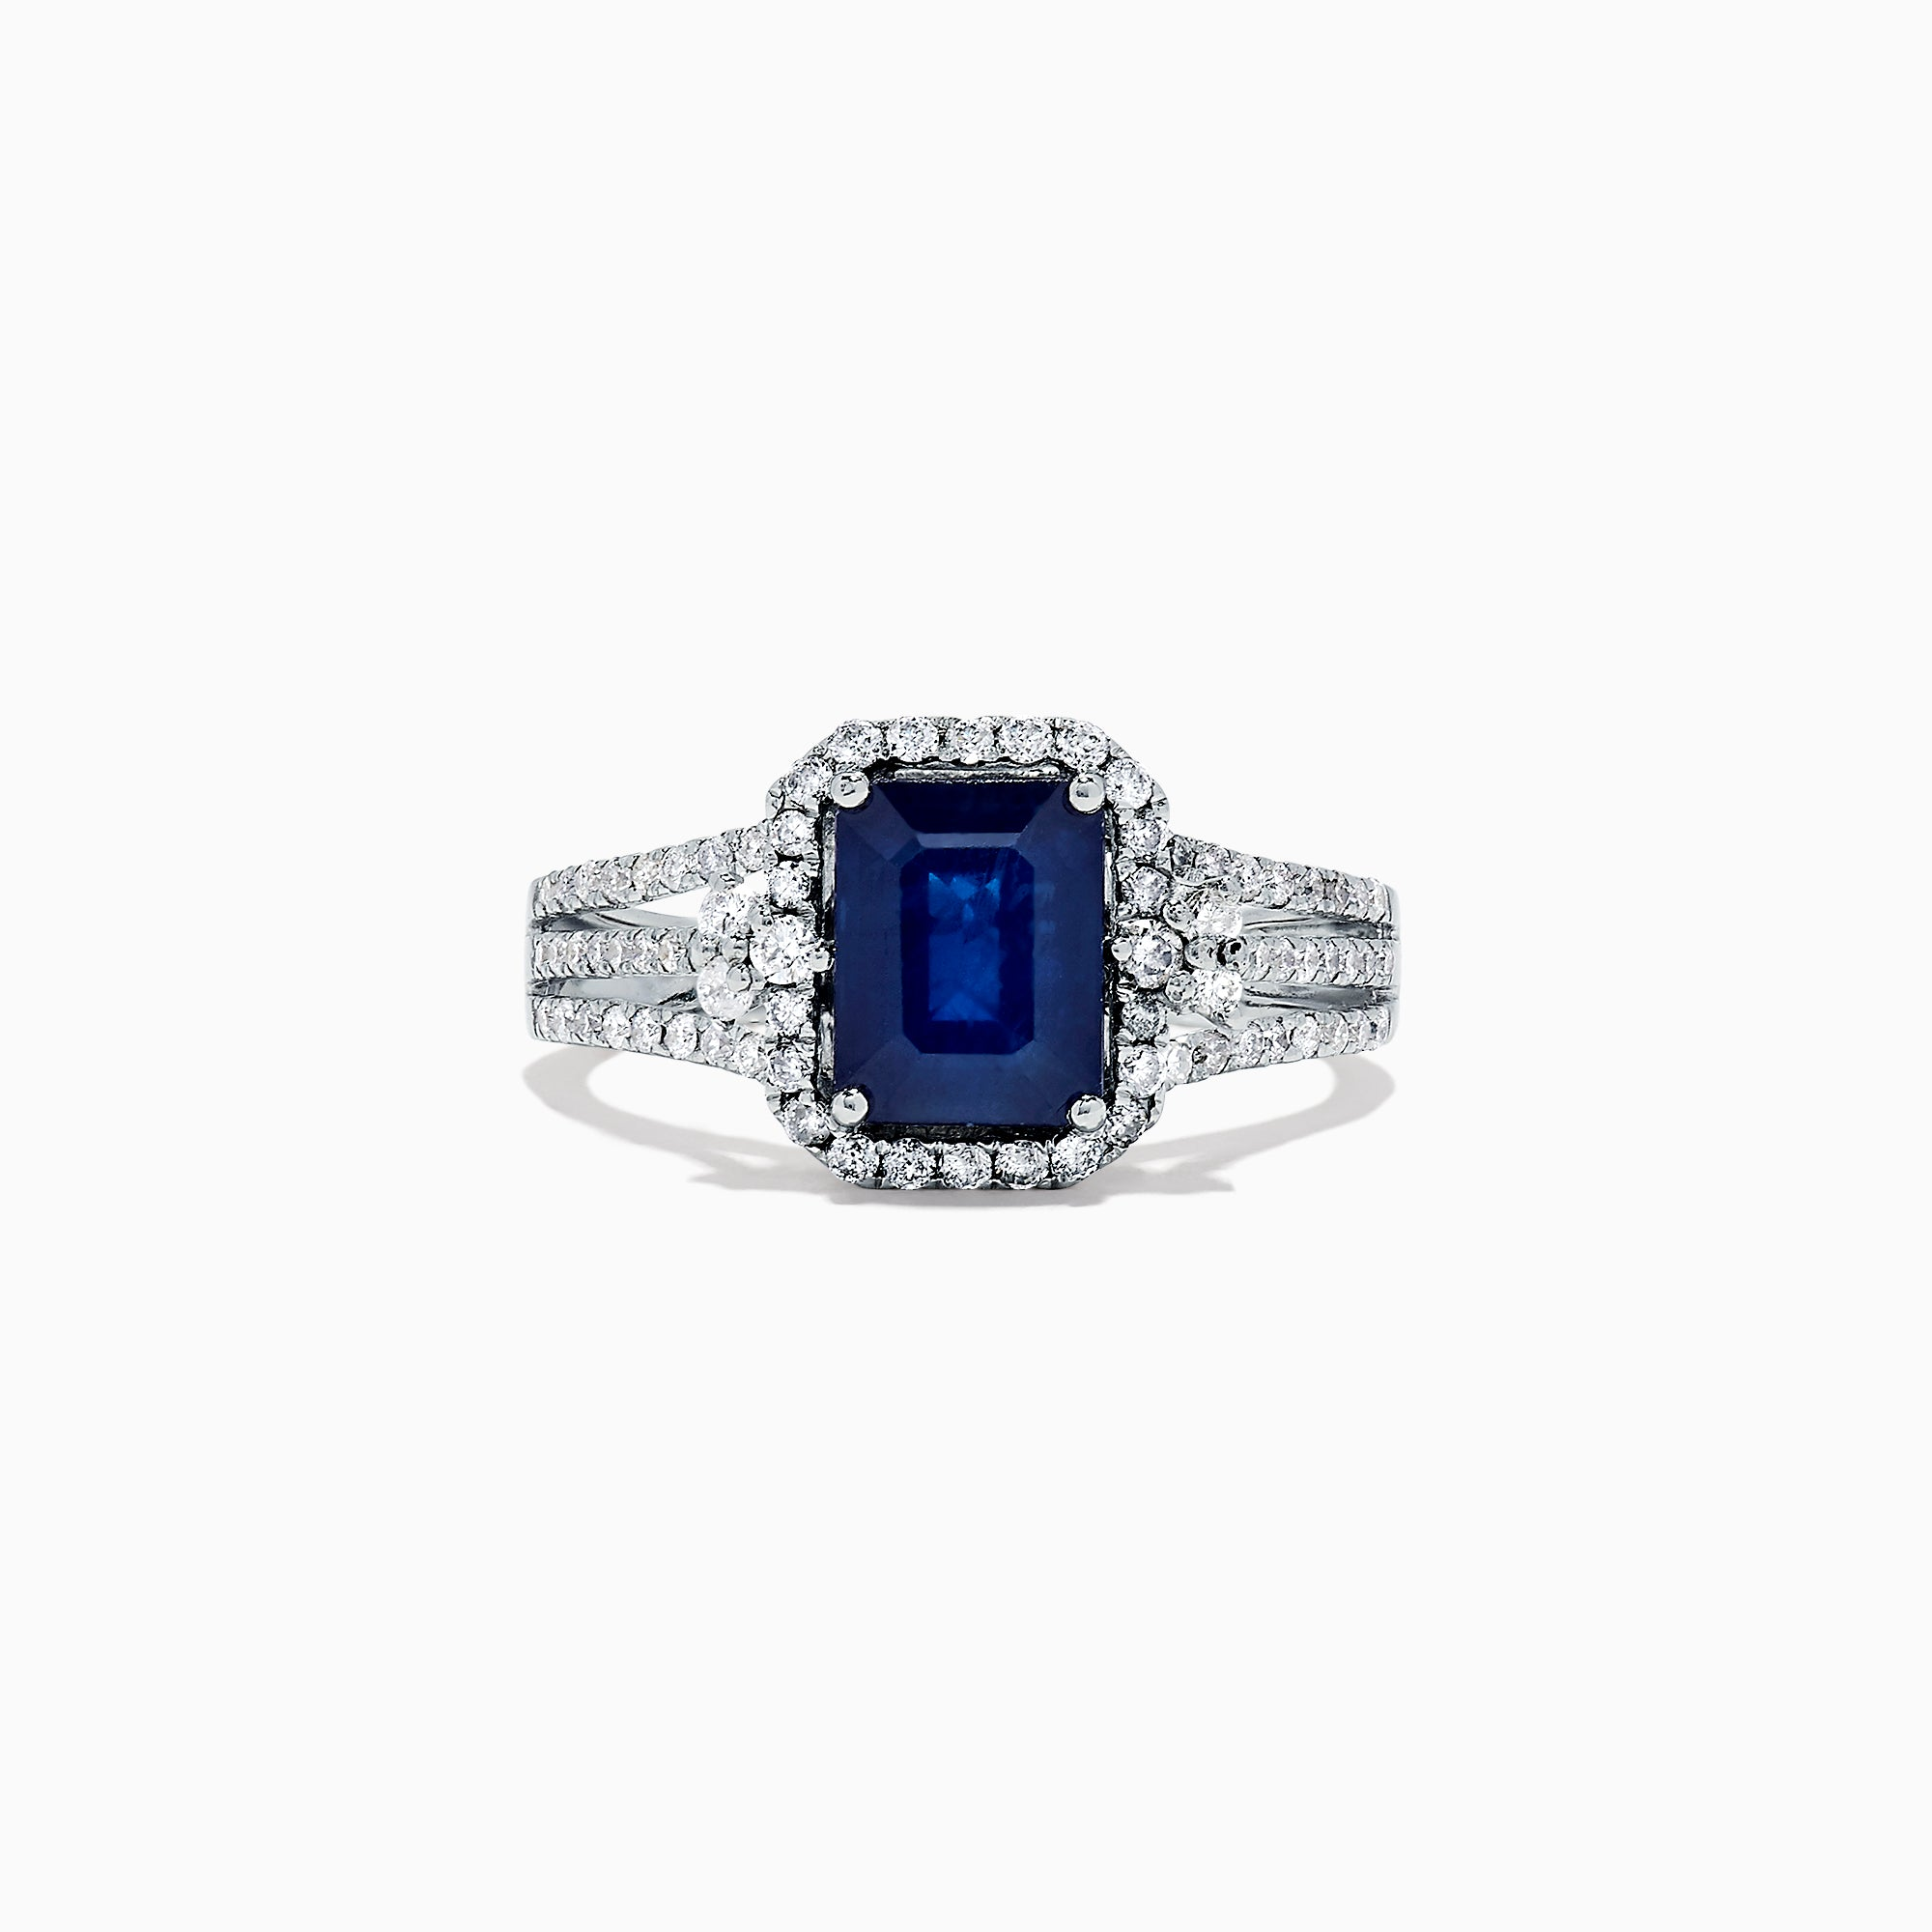 Effy 14K White Gold Sapphire and Diamond Ring, 2.01 TCW